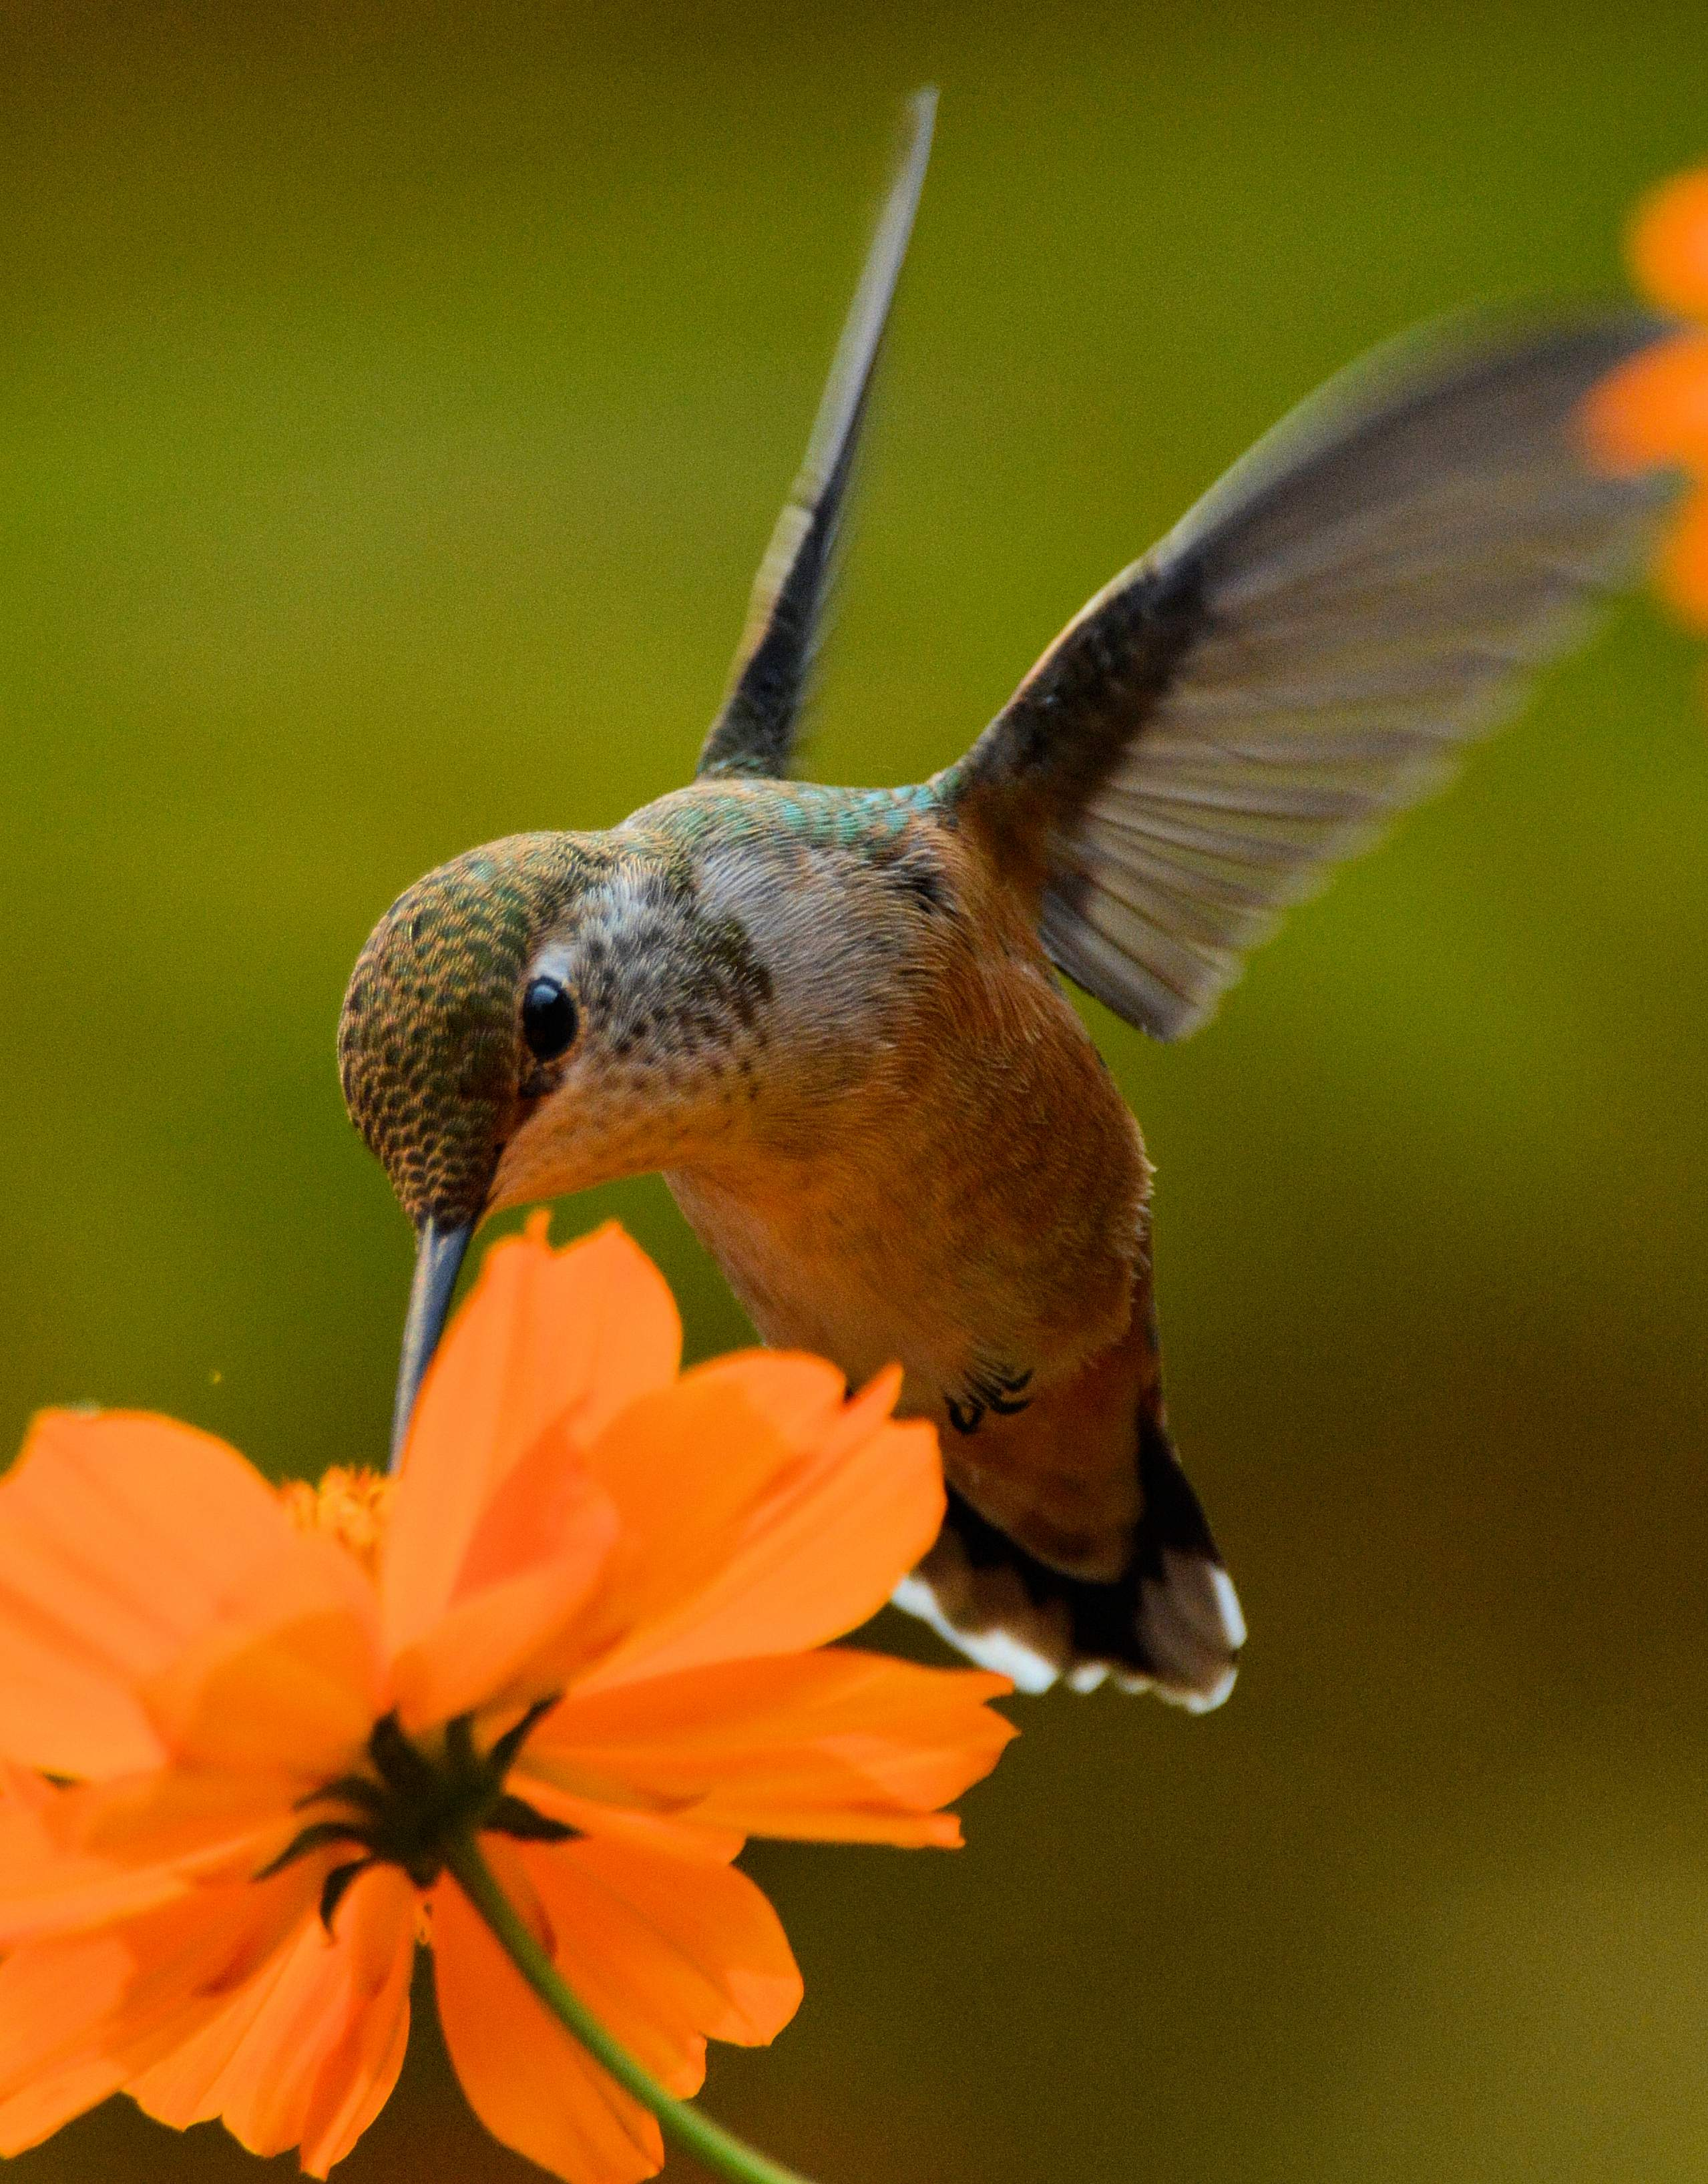 Hummingbird with flower. - Photo by Richard Wilson